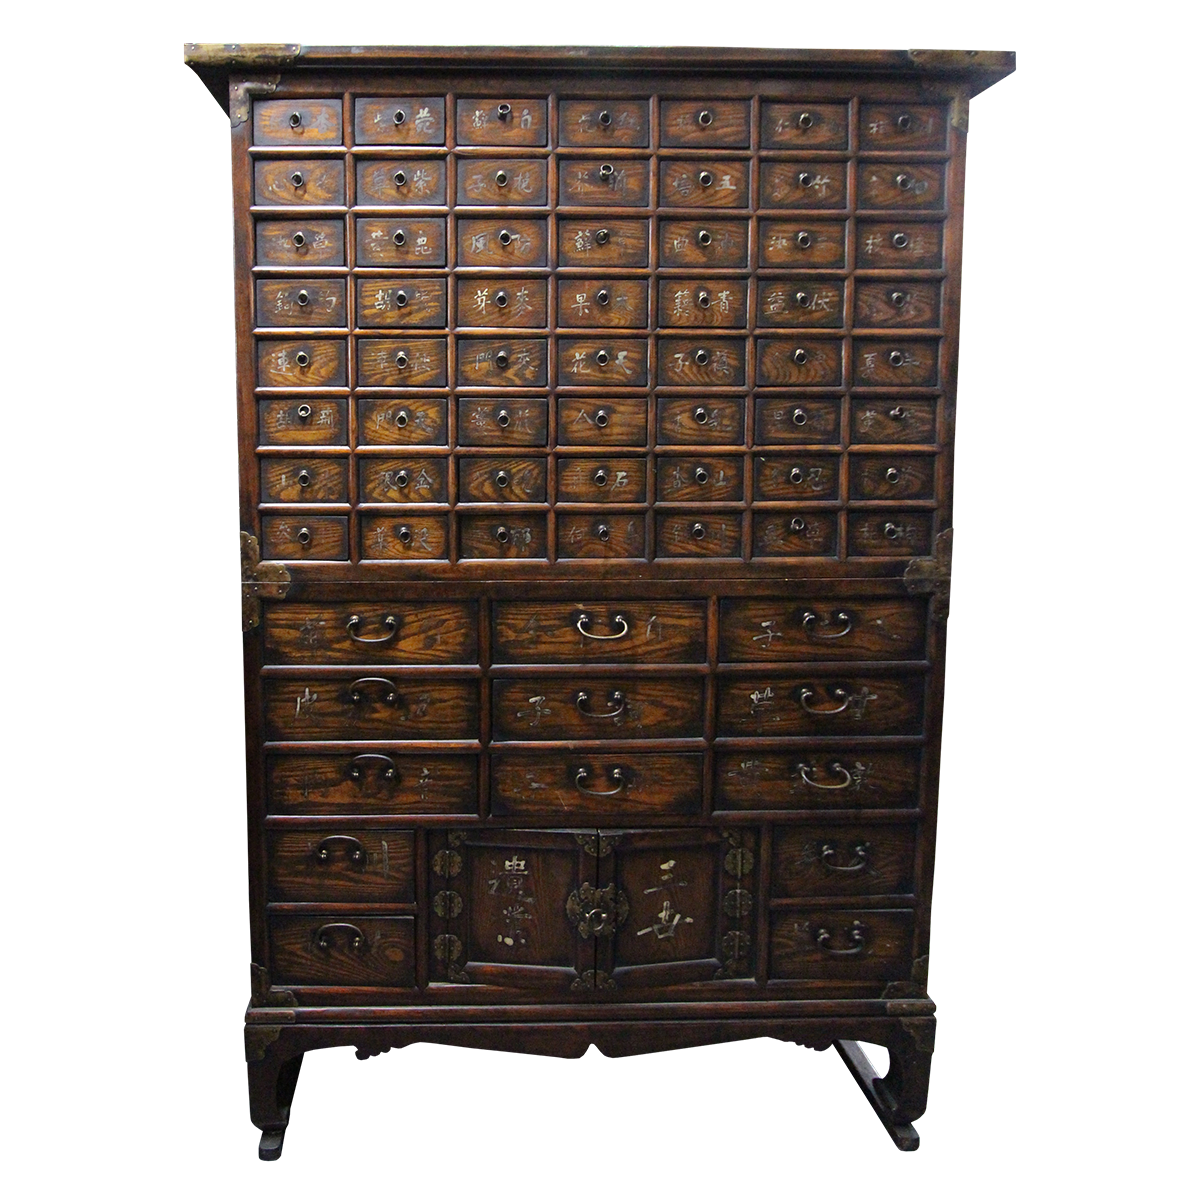 Chinese Medicine Cabinets - Go to ChineseFurnitureShop.com for even more  amazing furniture and home - Chinese Medicine Cabinets - Go To ChineseFurnitureShop.com For